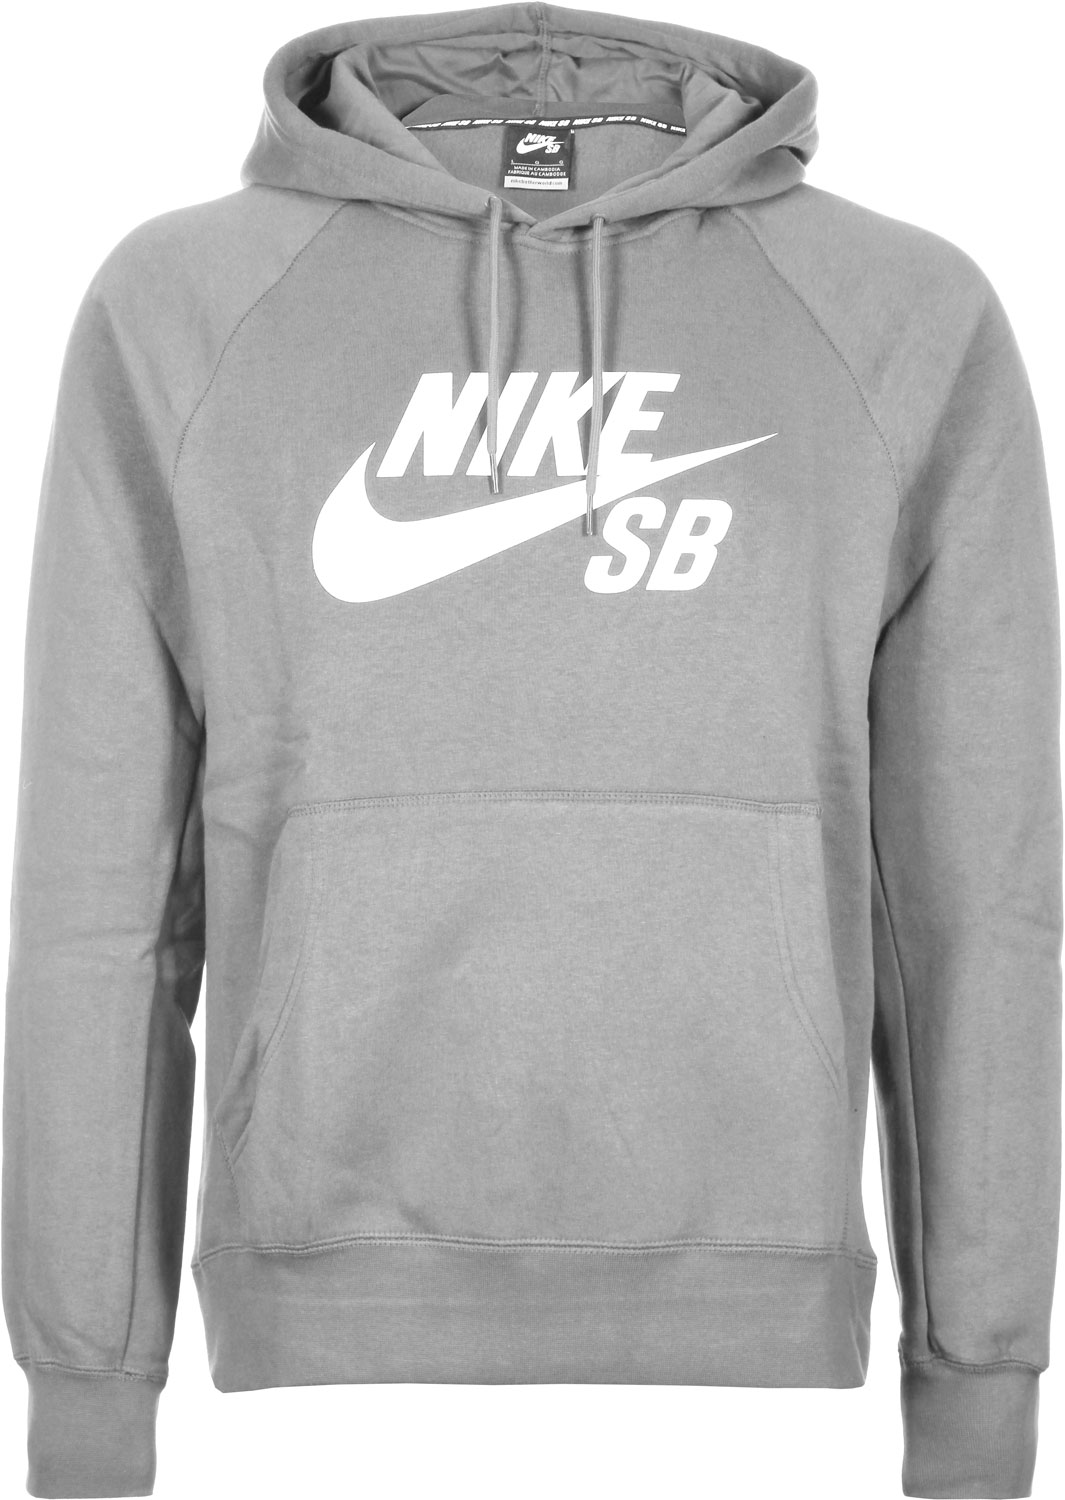 great quality 50% off first rate Sweat nike sb - fermeleycaut.fr